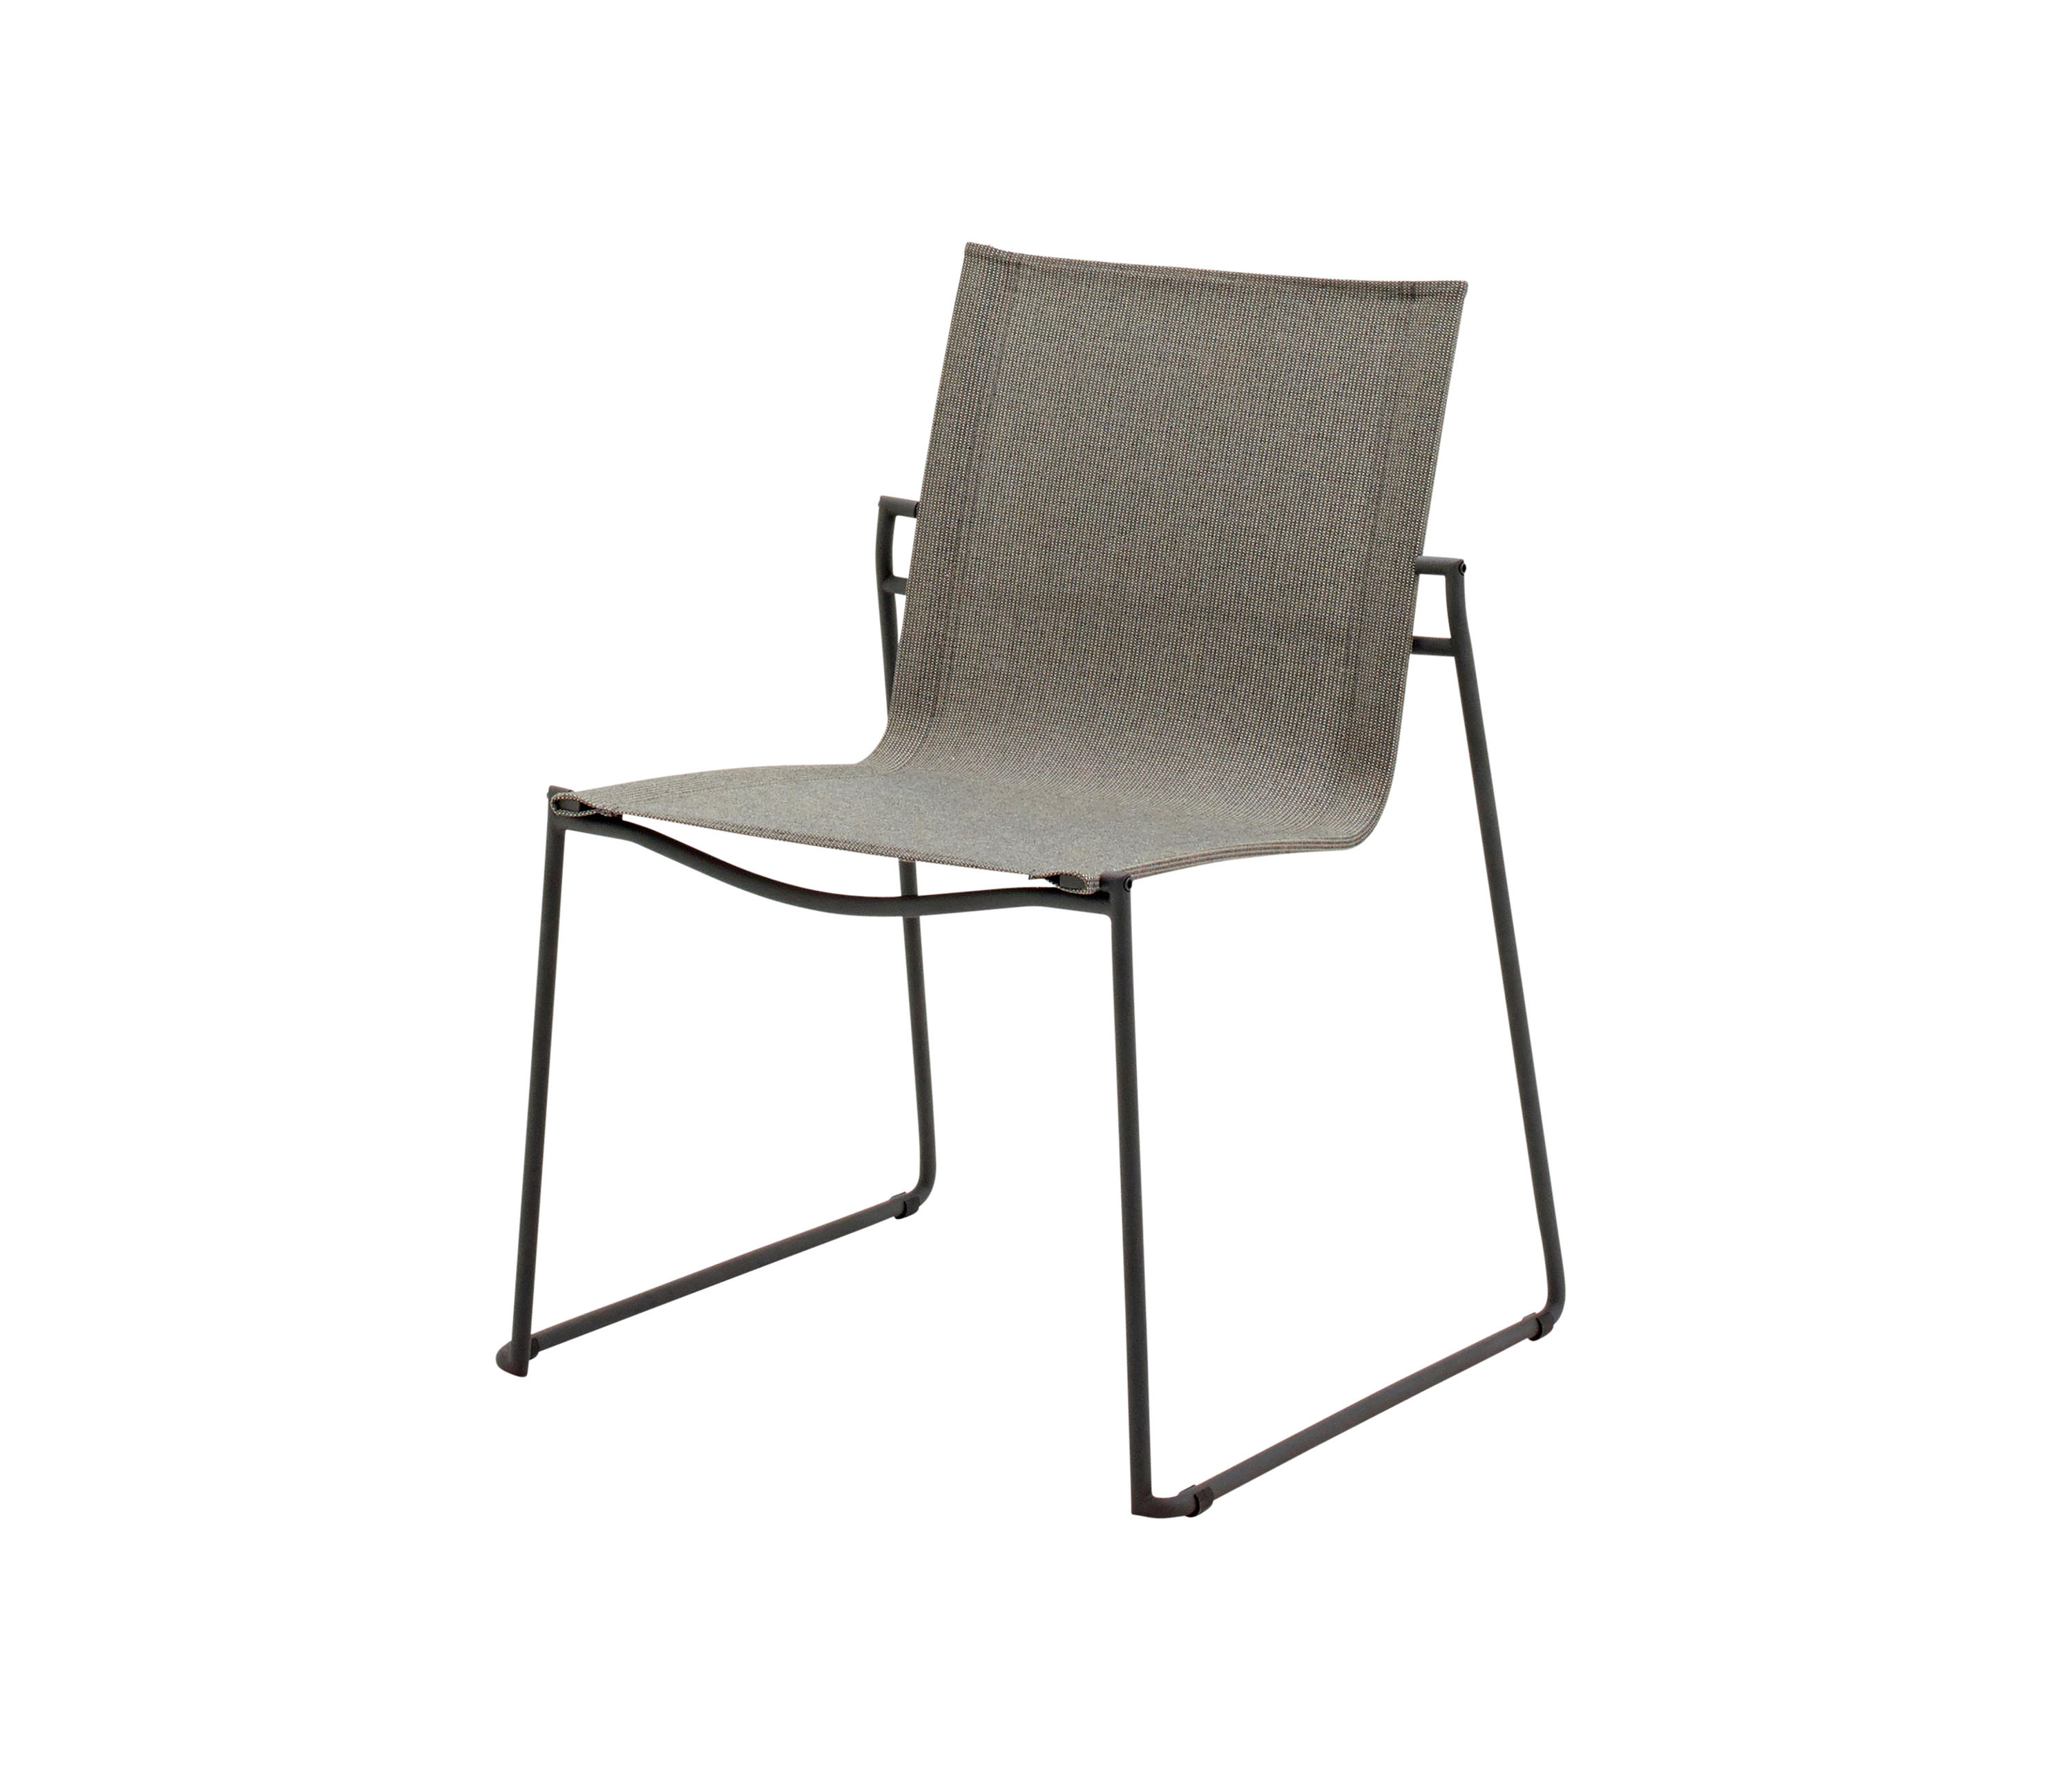 ASTA STACKING CHAIR Garden chairs from Gloster Furniture GmbH